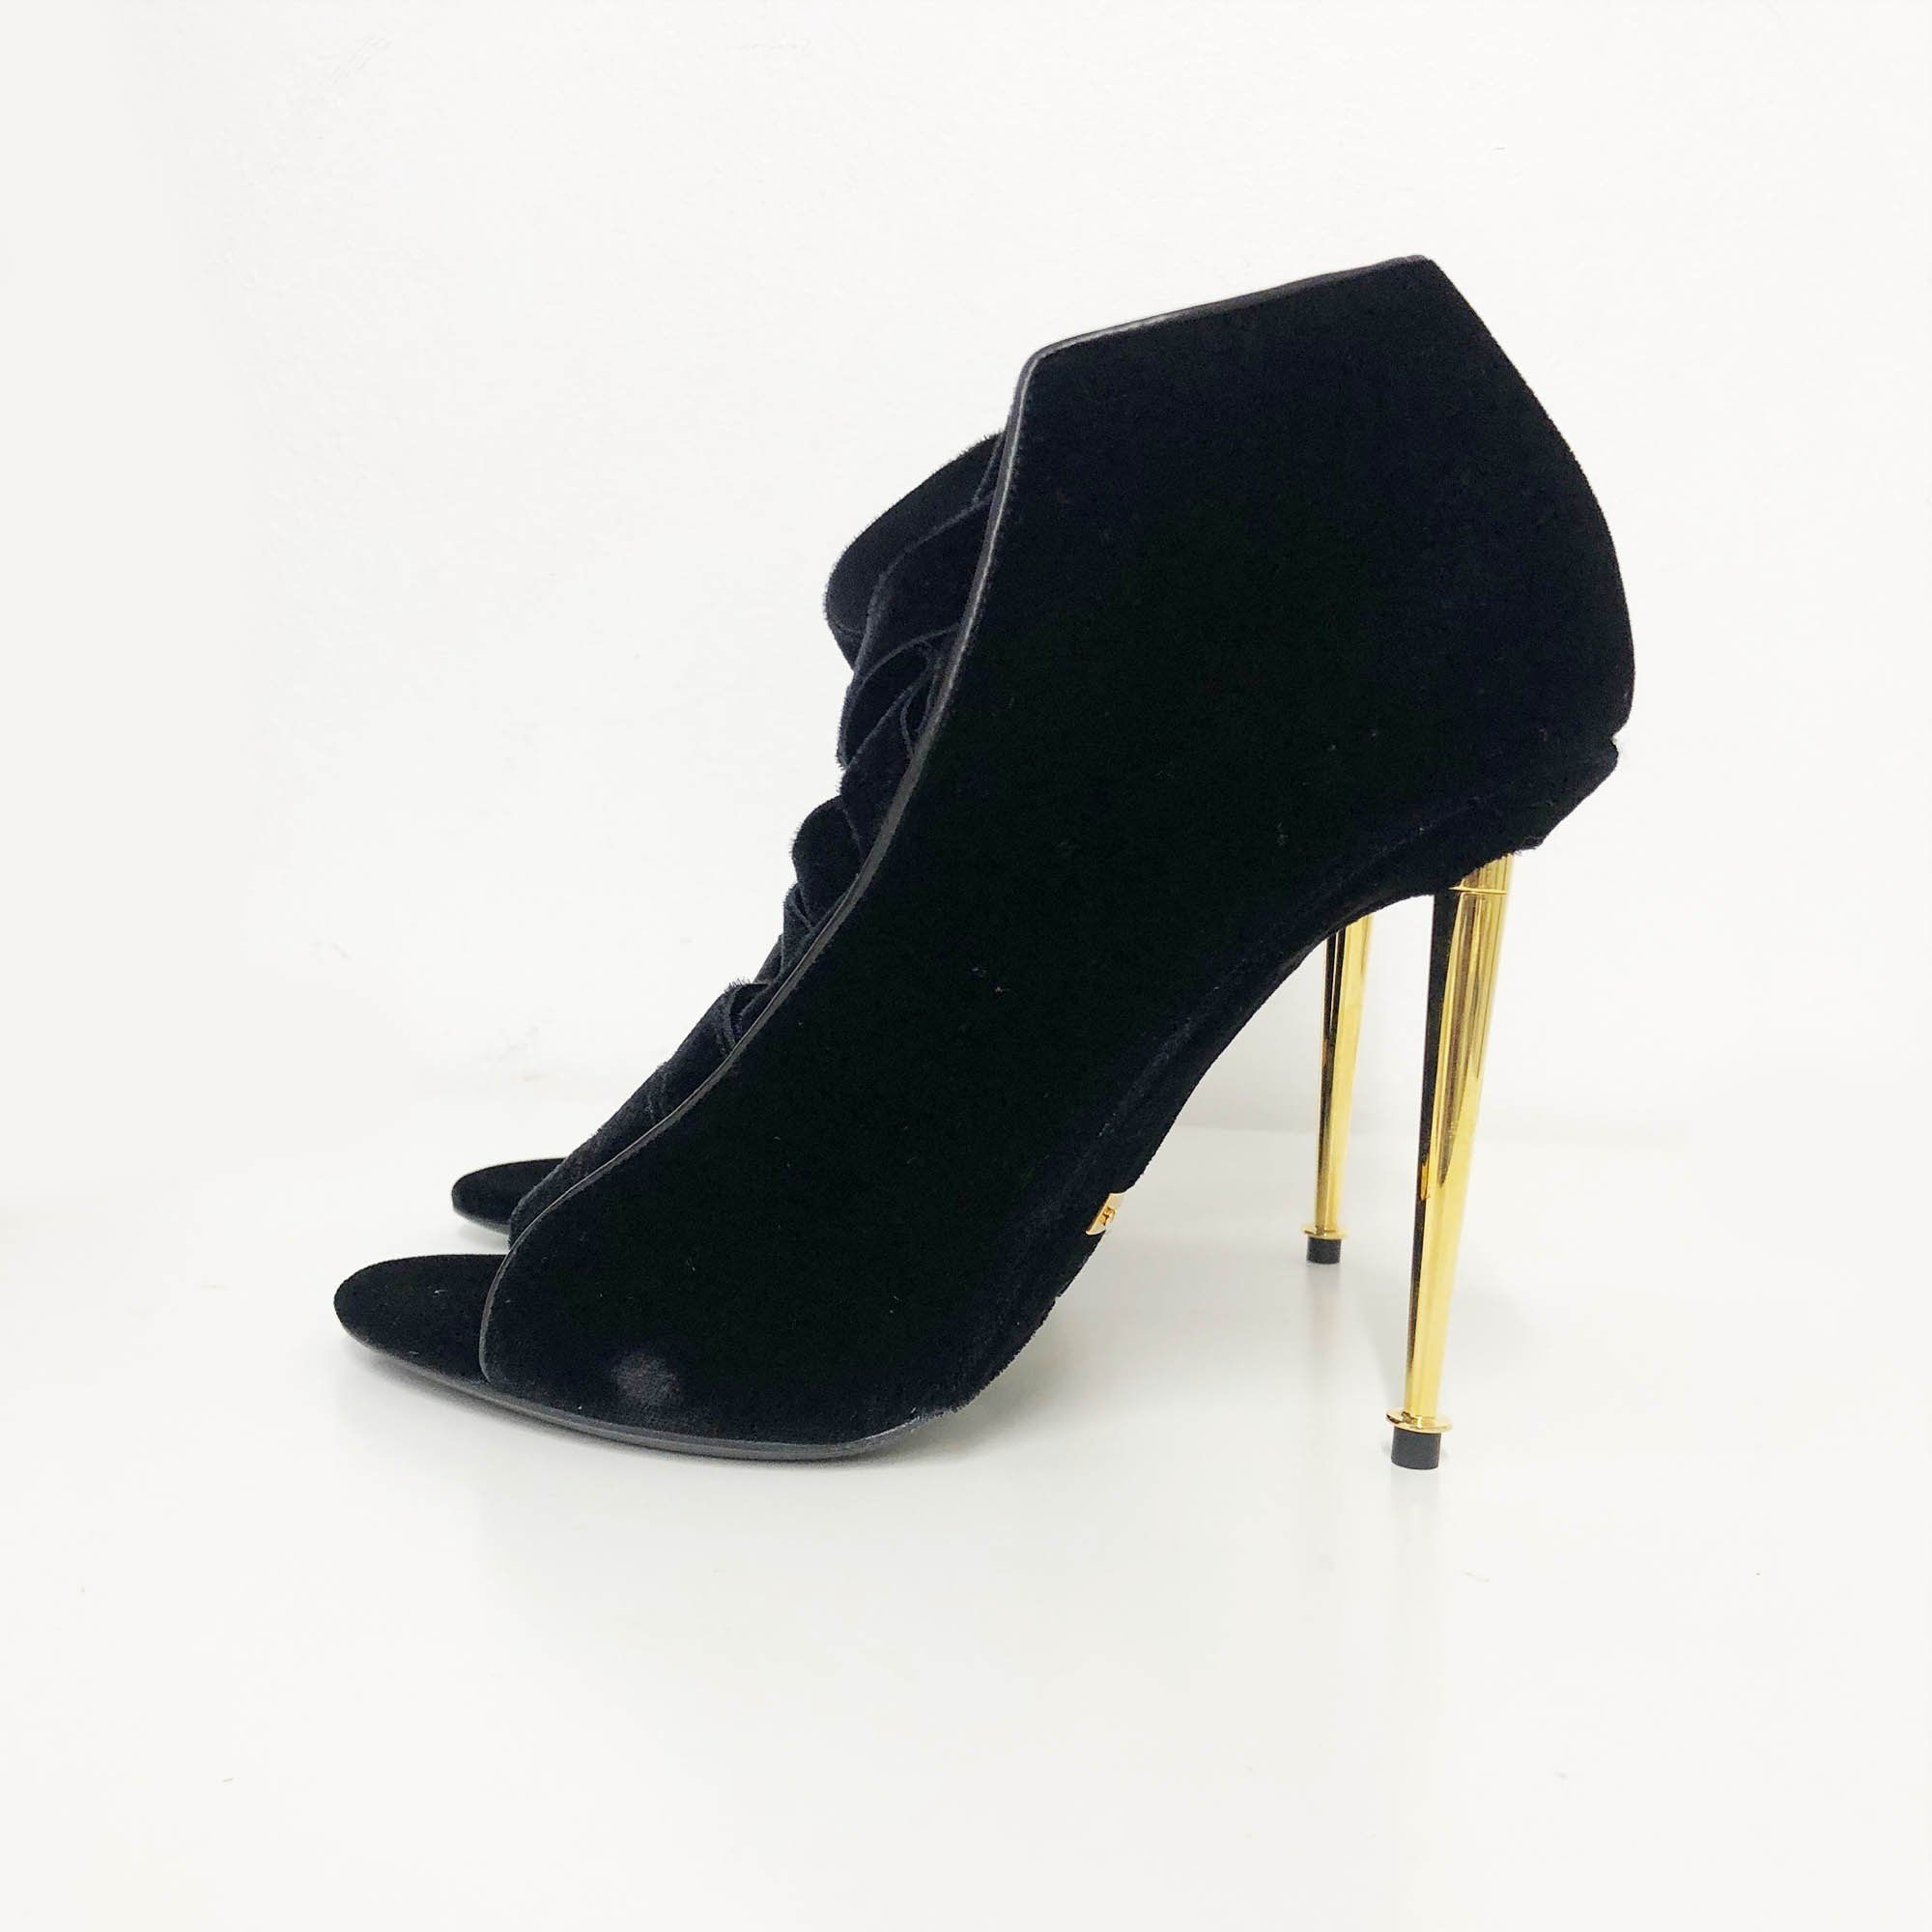 Tom Ford Black Suede Heels